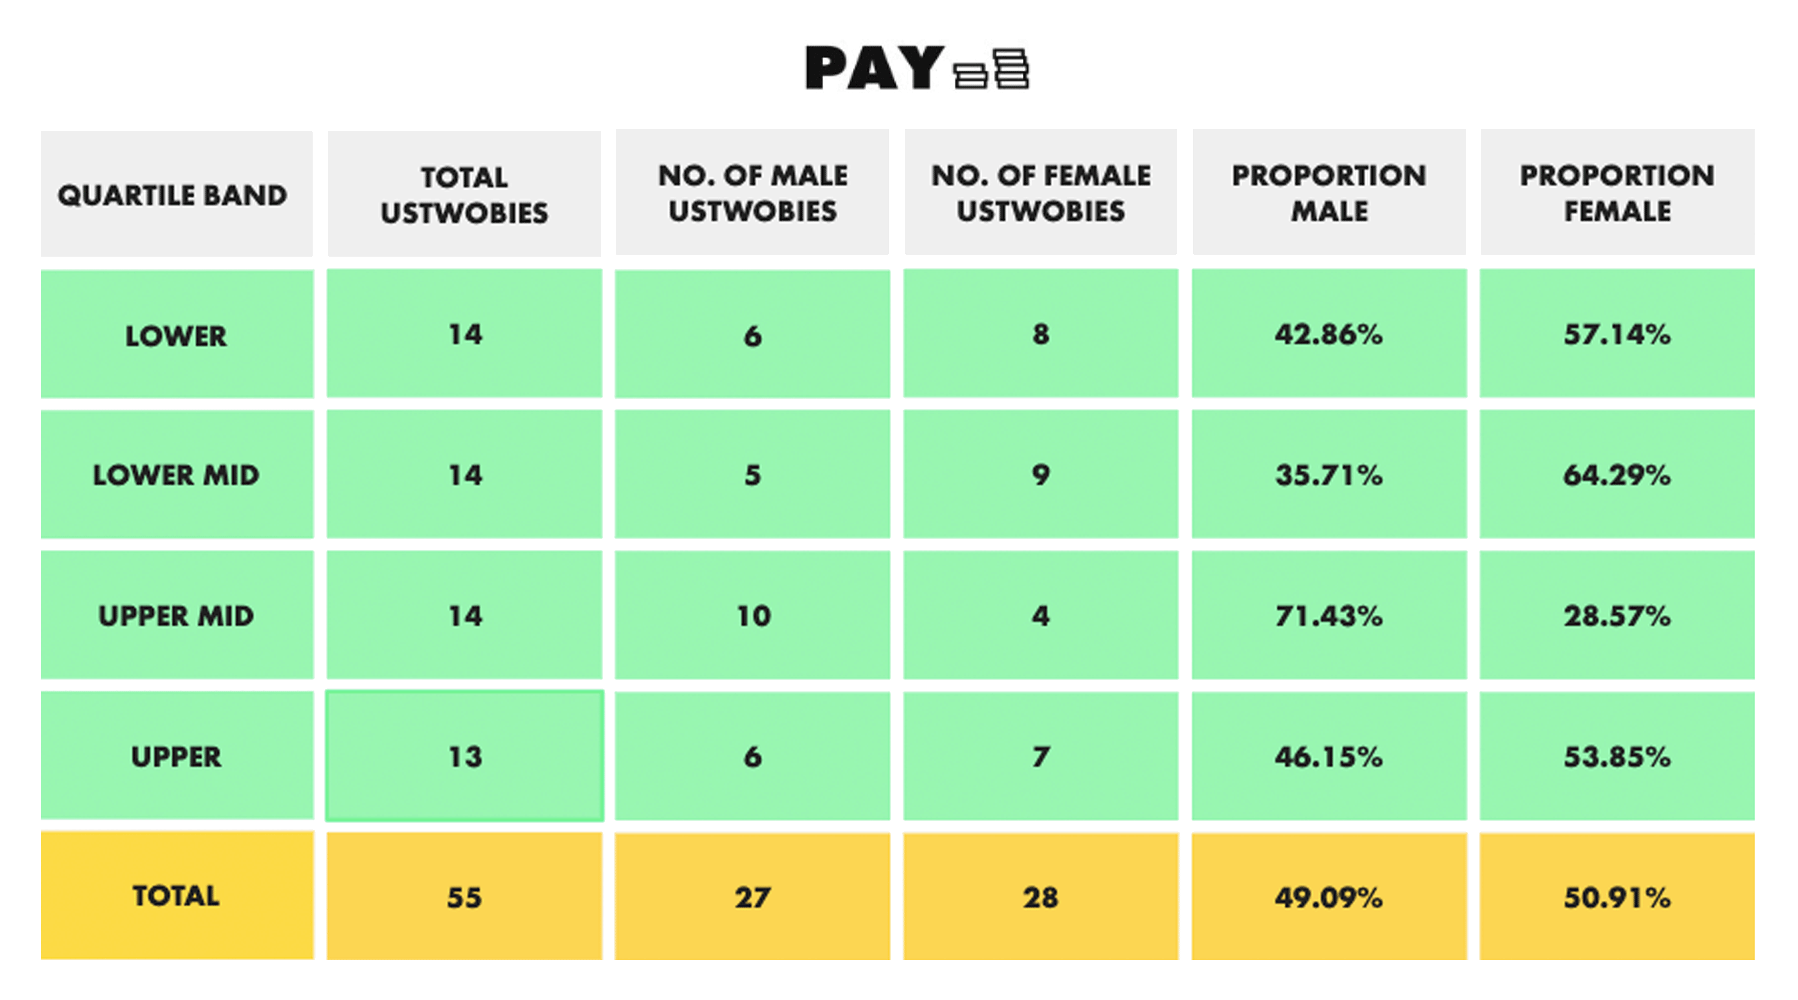 ustwo-gender-pay-gap-2019-01